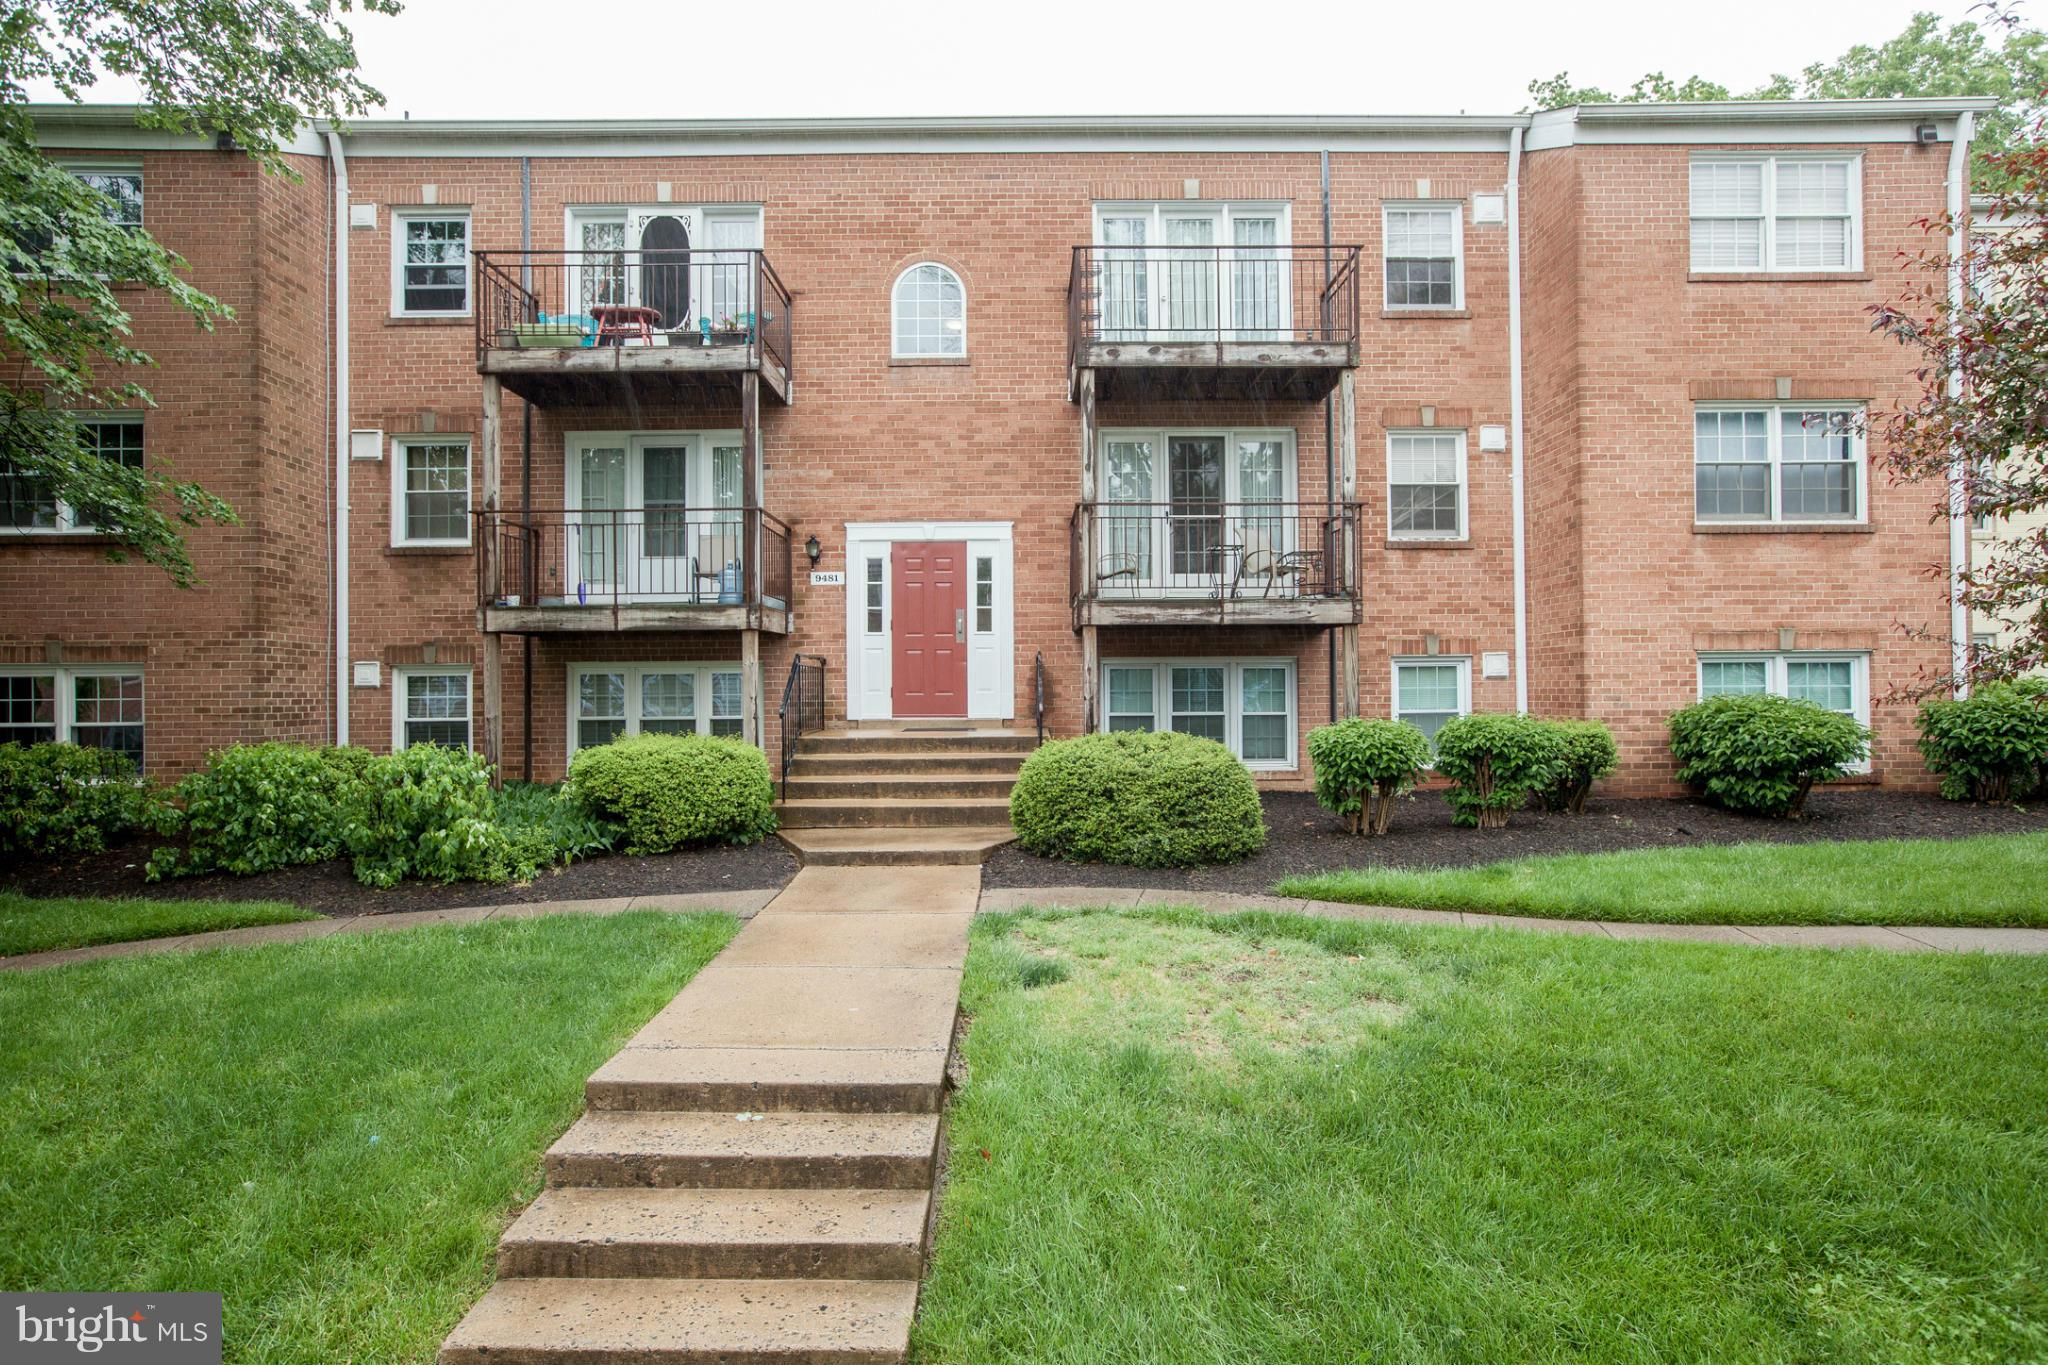 Totally renovated 1BR/1BA condo in Foxcroft Colony!Just off Rt 50 at Fairfax Circle, conveniently located gem features spacious LR+DR w brand new faux wood floors!Renovated kitchen w granite+ SS apps.The BR comes loaded w brand new carpet +spacious closet w updated hall bath.All utilities included in condo fee.Foxcroft amenities=pool,3 playgrounds, tennis. OPEN SAT 2-4 and SUN 1-4!